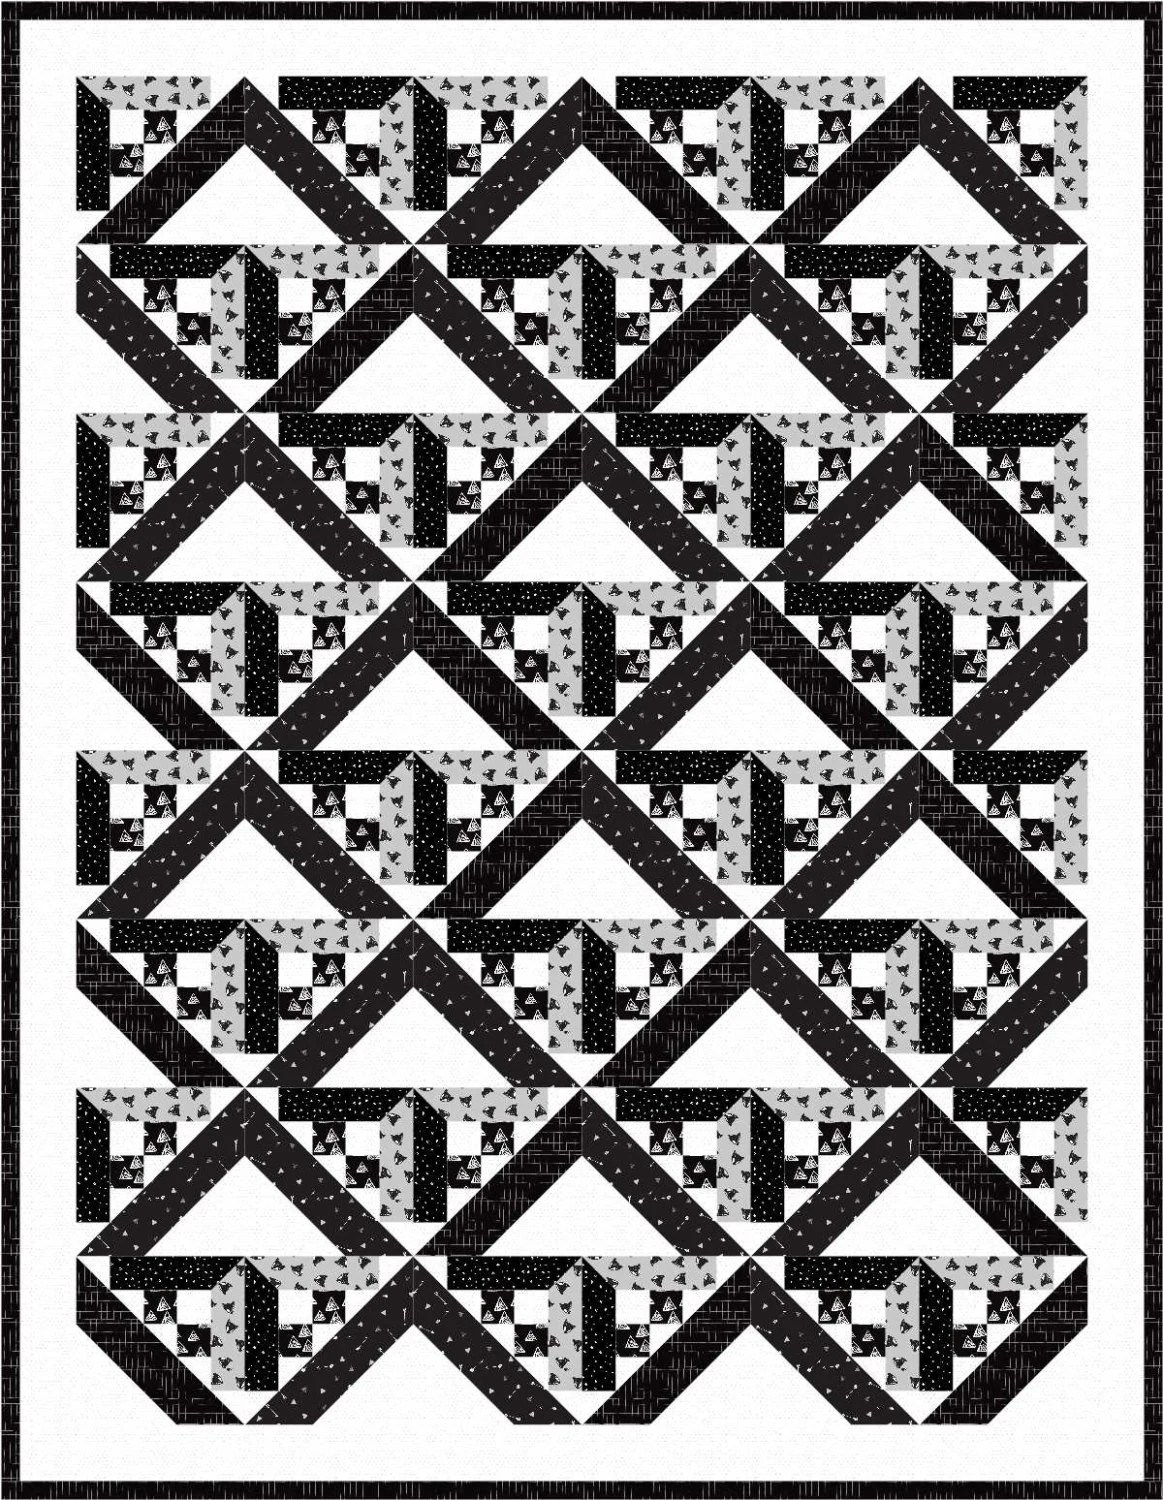 Black And White Geometric Quilt : black, white, geometric, quilt, Modern, Quilt, Pattern, Geometric, Black, White, Headed, North